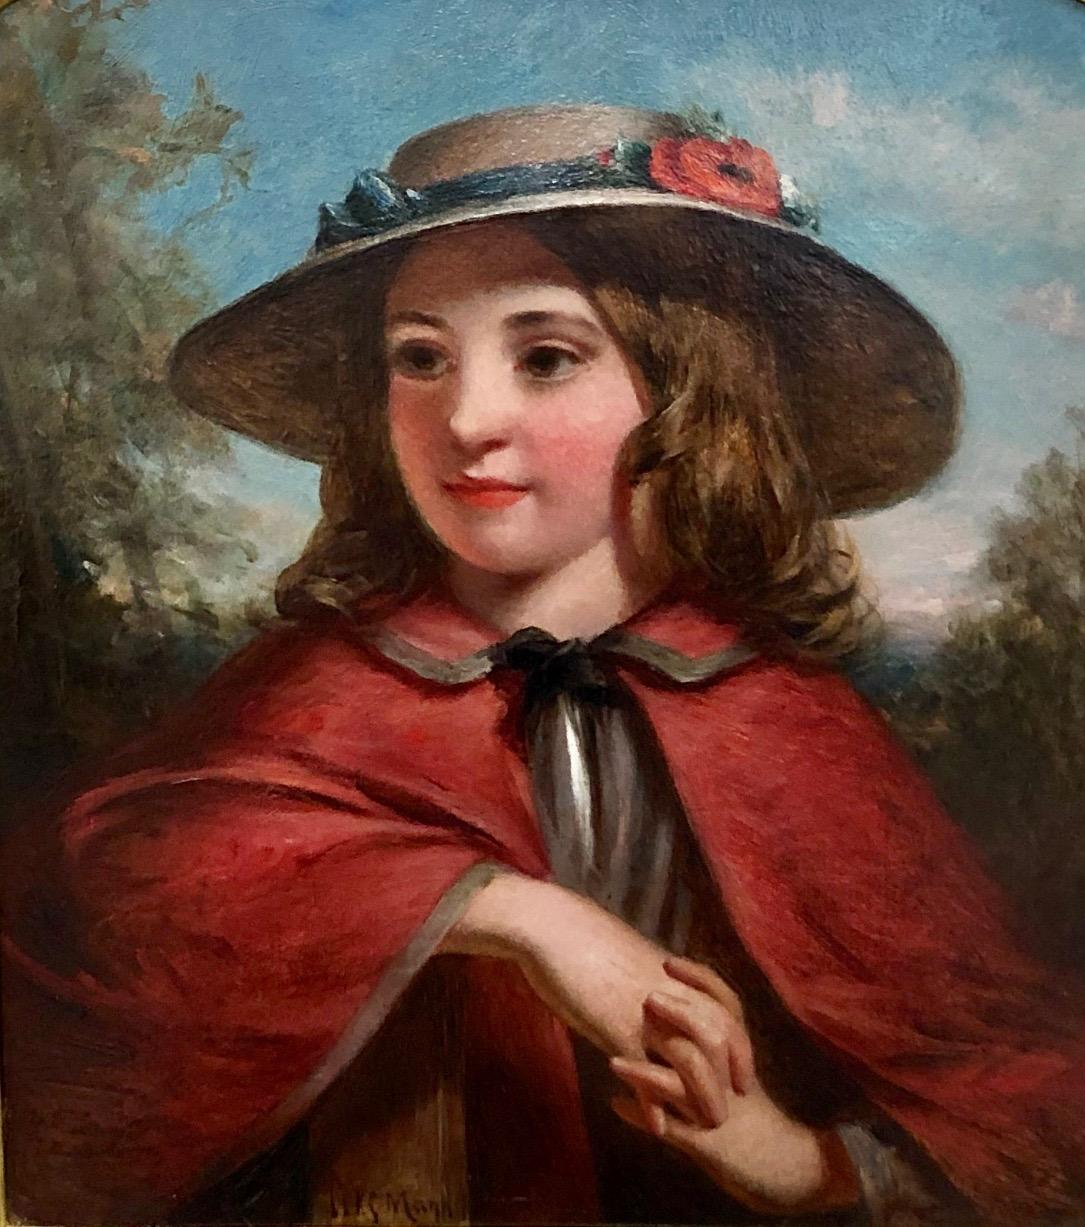 Little Red Riding Hood - Literary Portrait Oil Painting by J.H.S.Mann